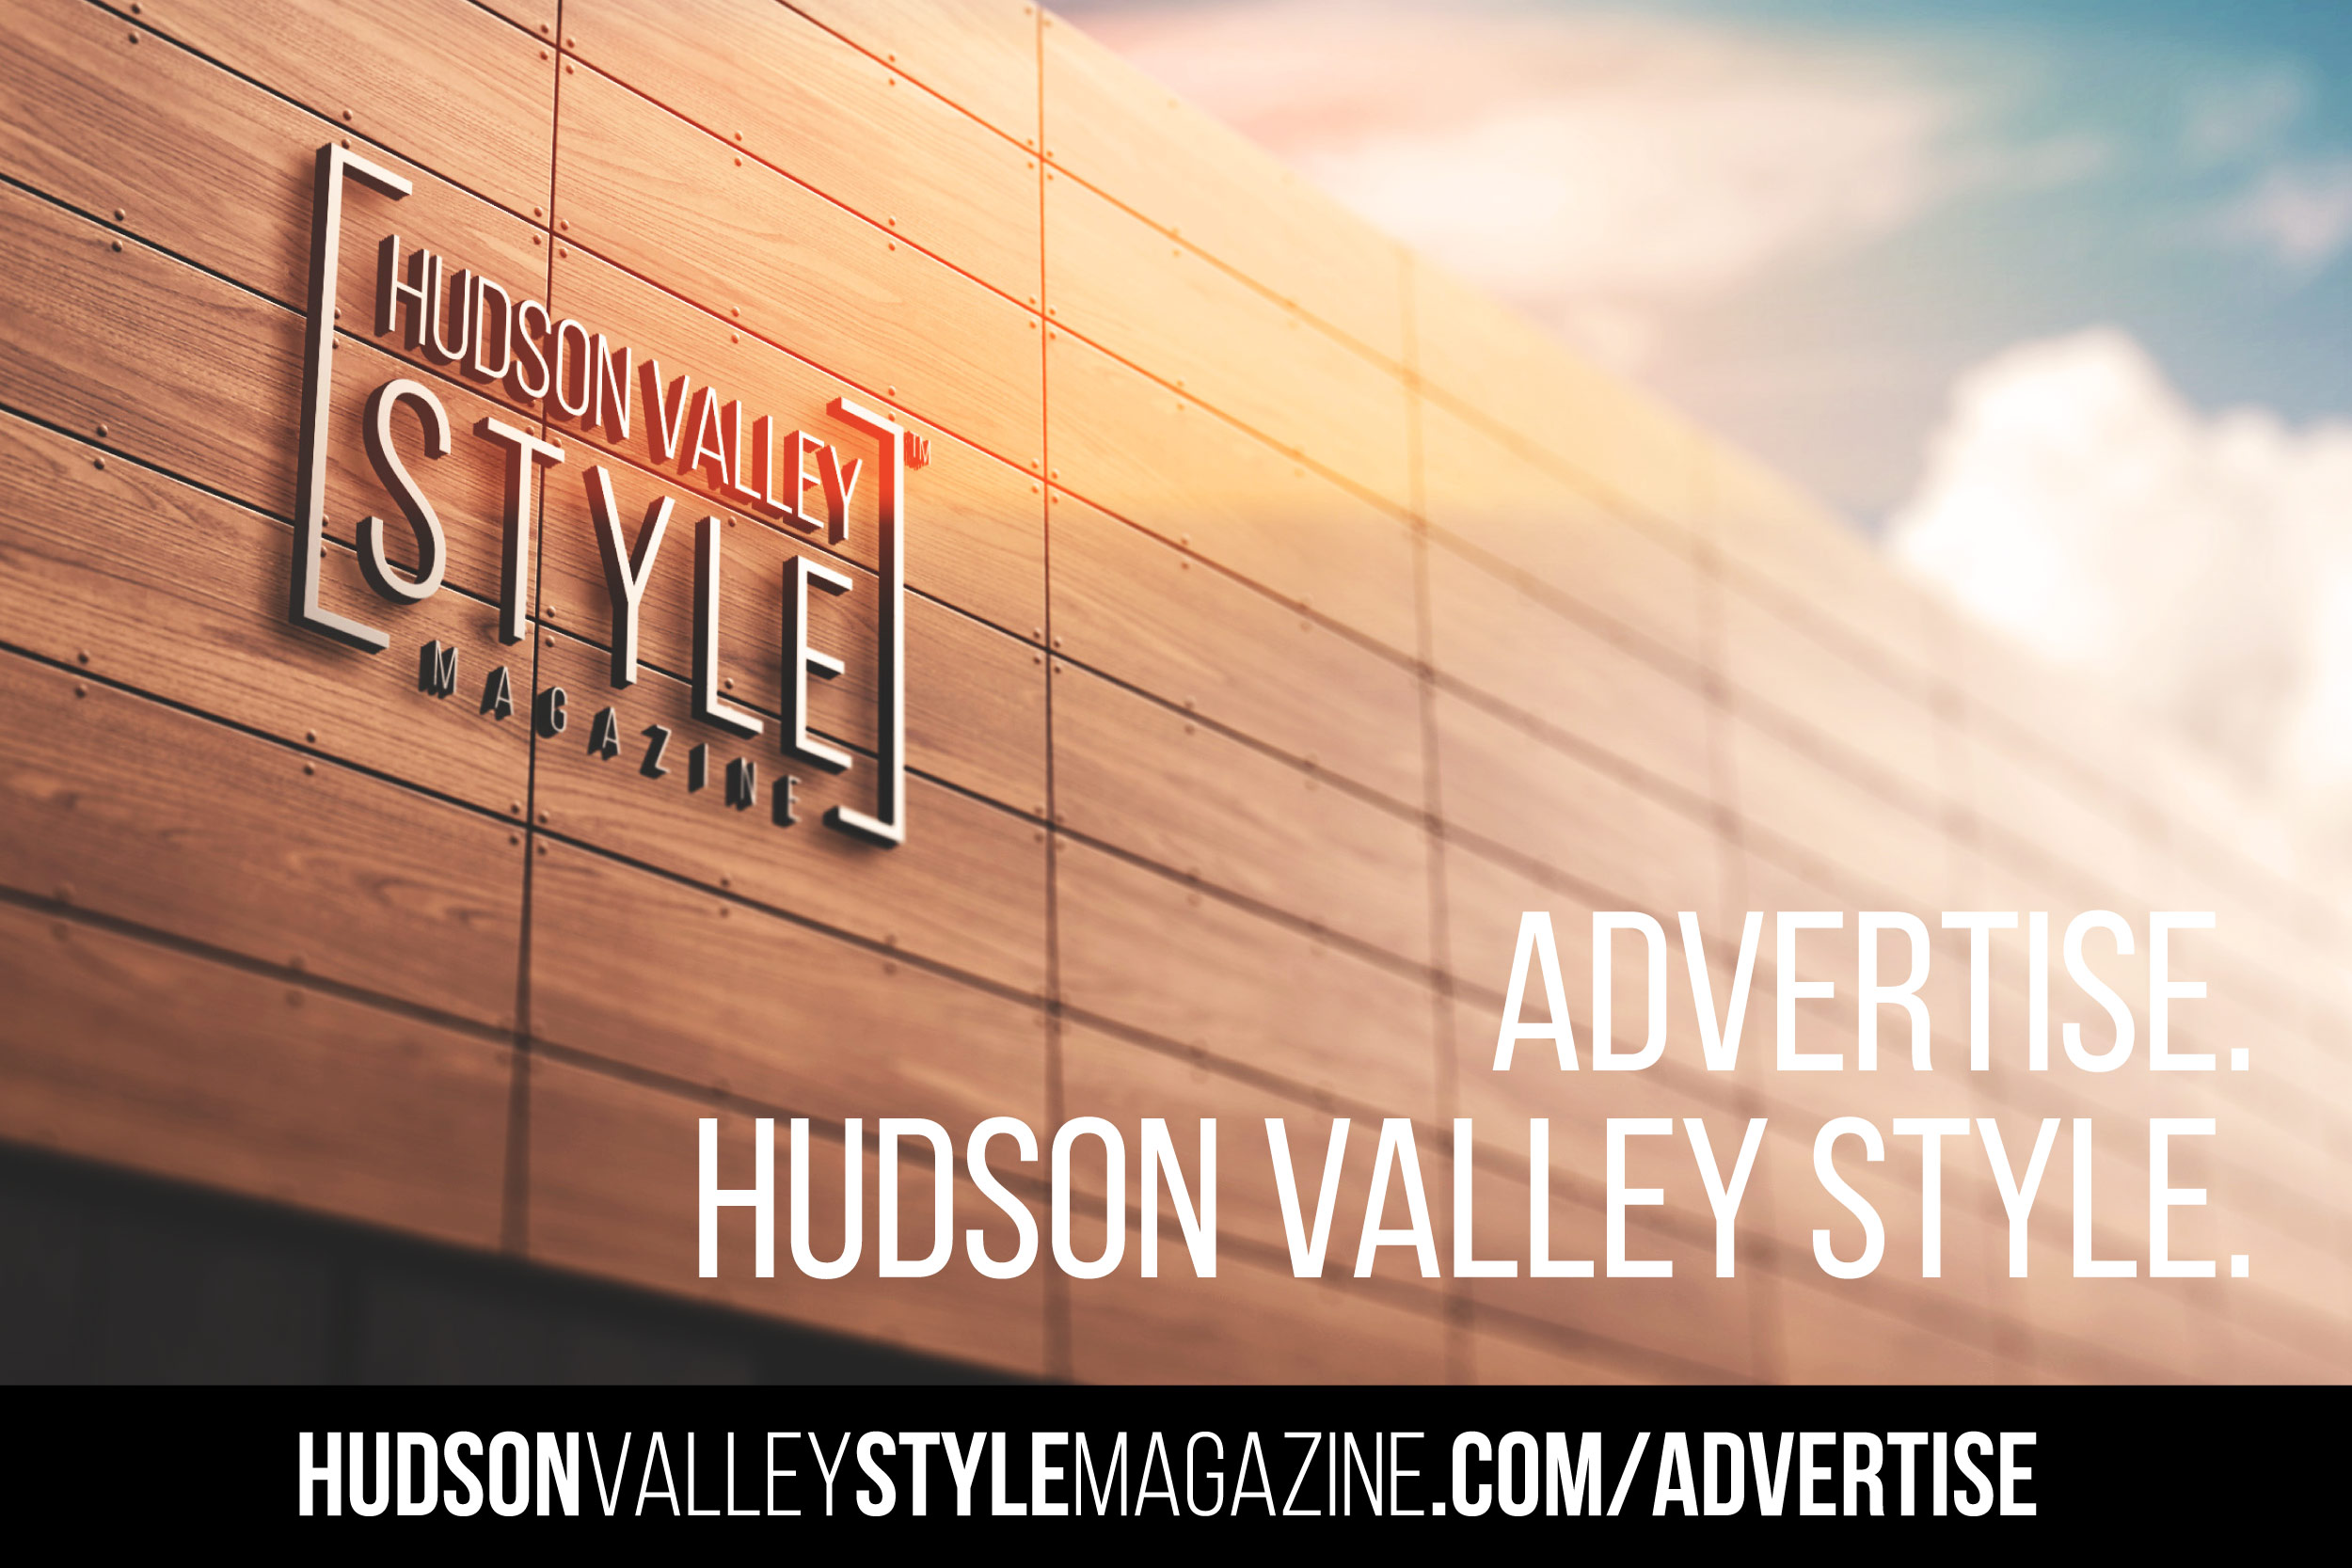 Advertise with Hudson Valley Style Magazine